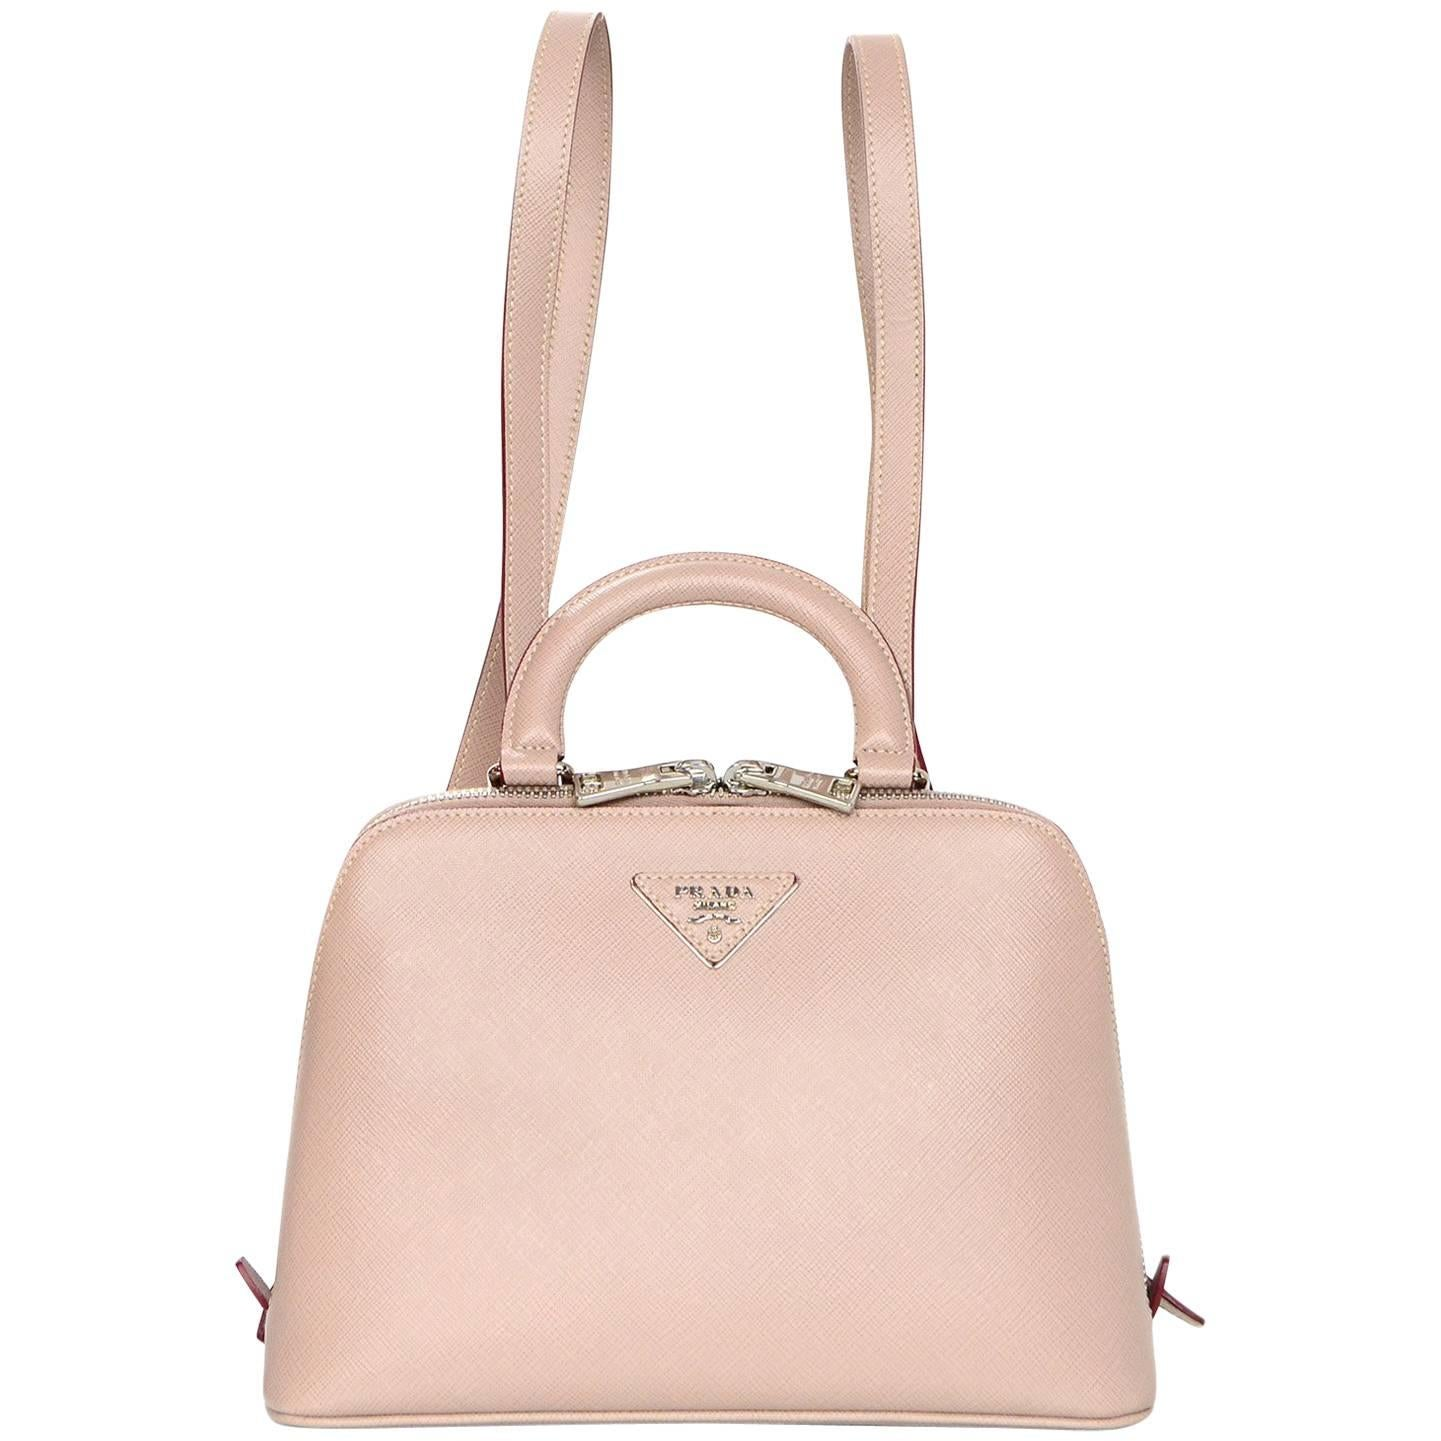 7d0258c199b0 ... discount code for prada taupe saffiano lux leather promenade mini  backpack bag for sale 0aeb1 5e85e